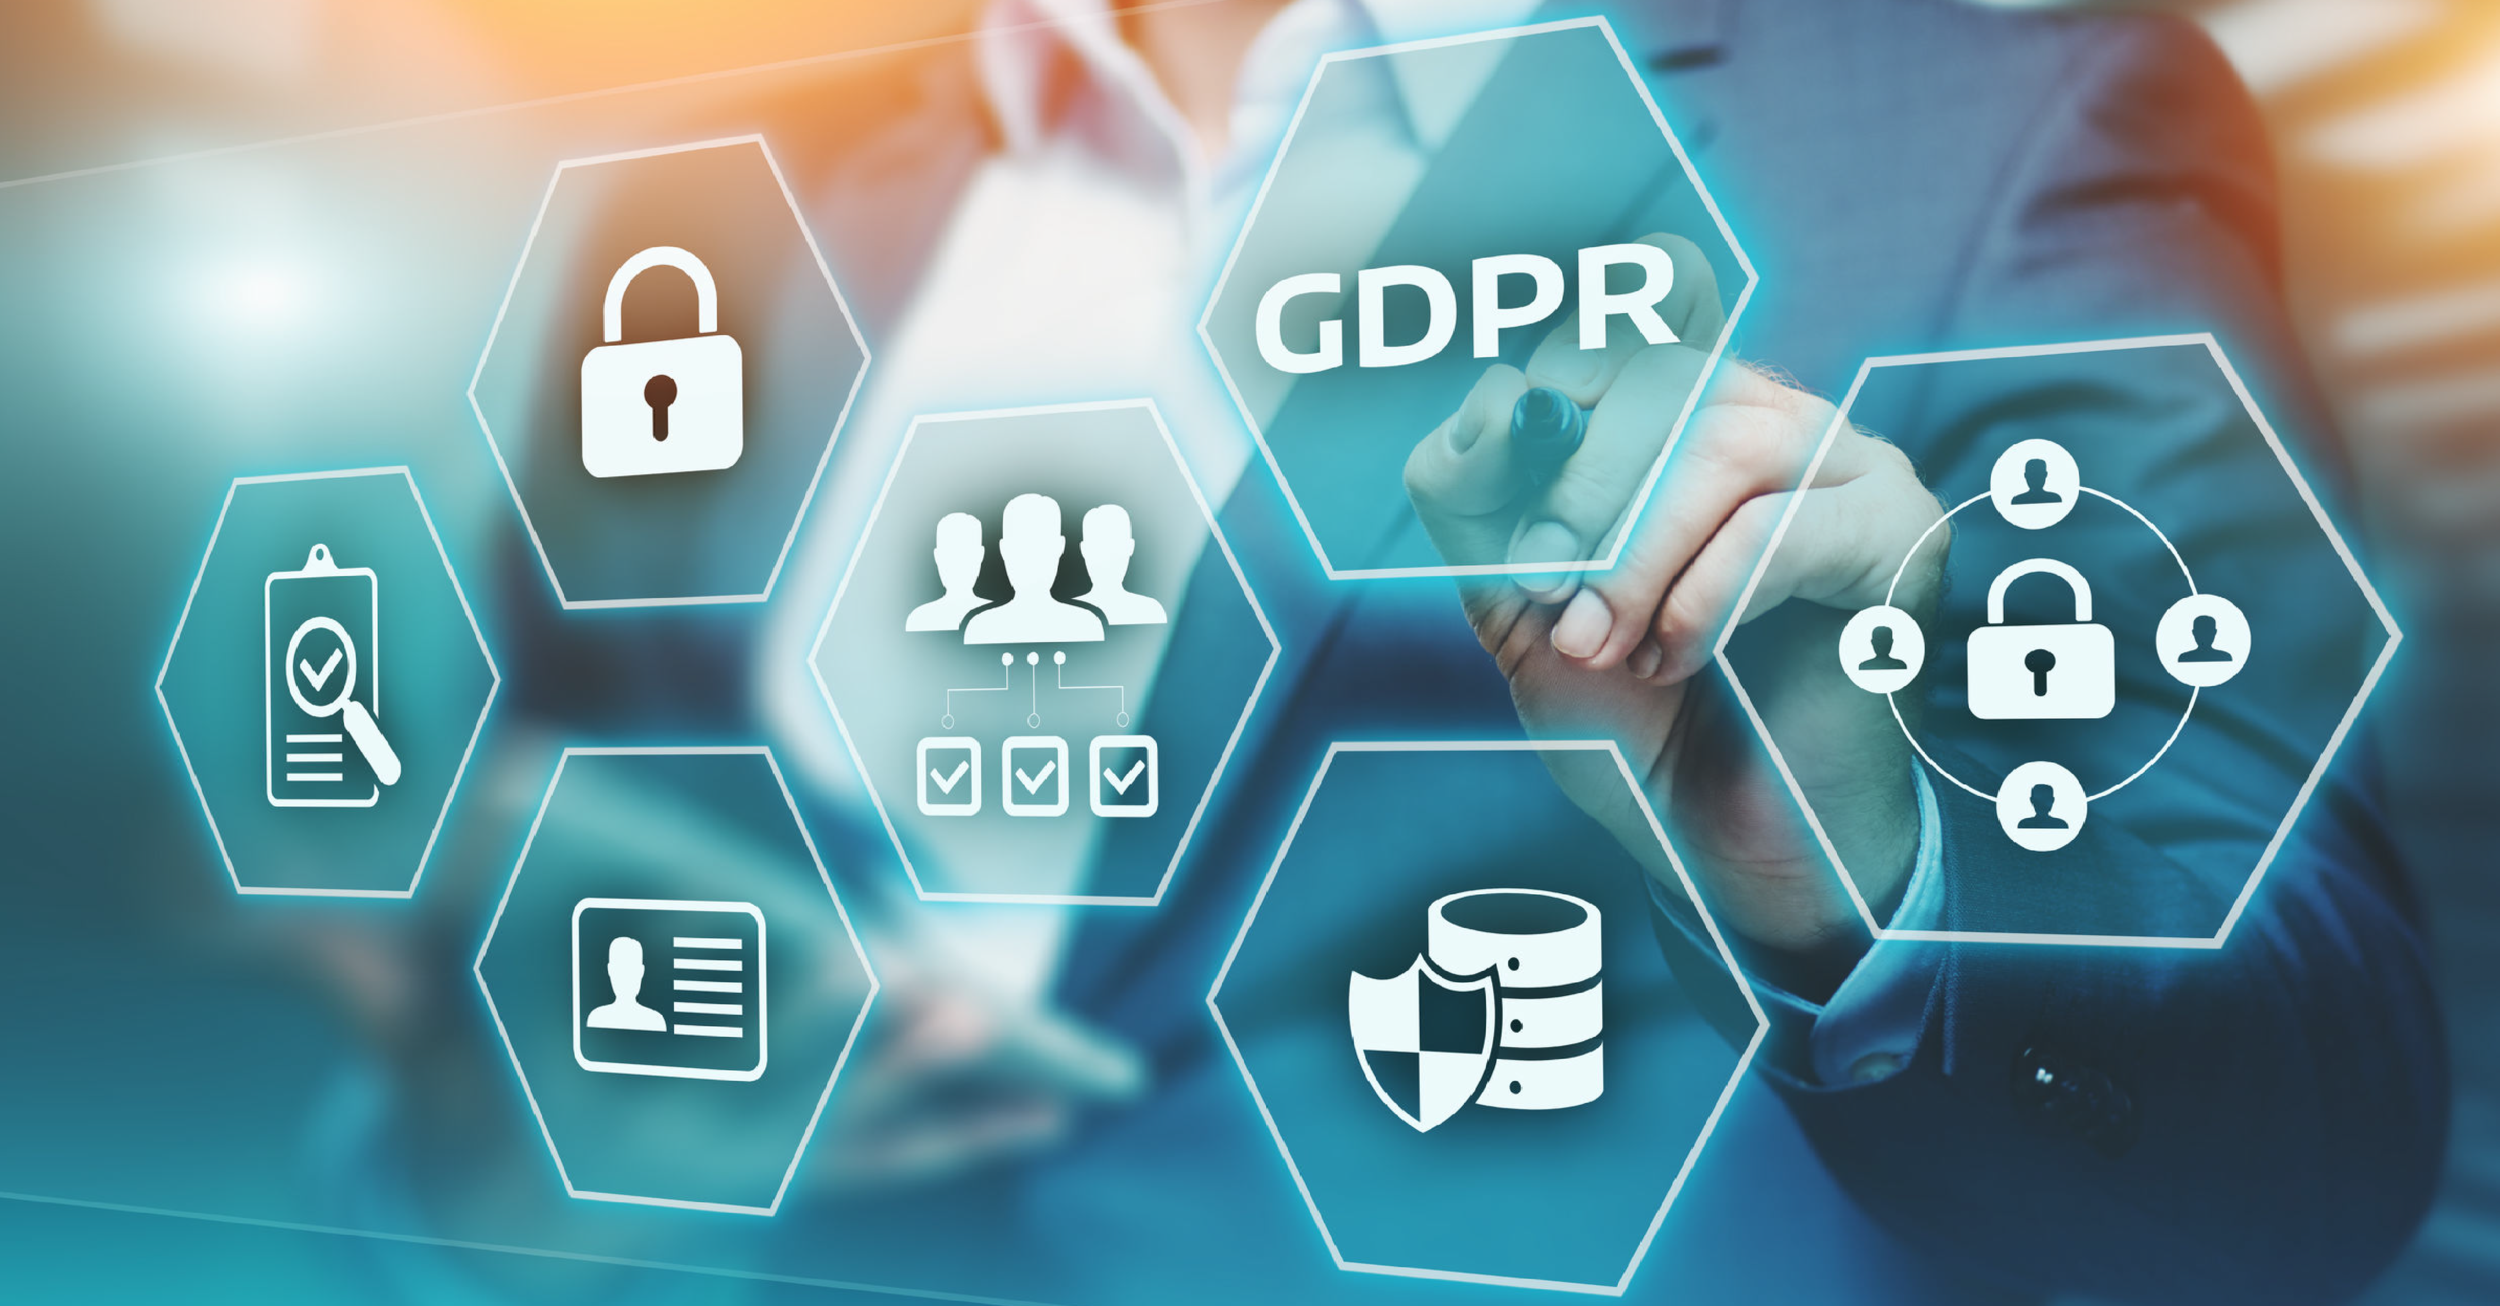 NetSuite System Security Tools for GDPR - GDPR is more than permission to contact. Data Security and Process Monitoring are at the heart of the new regulations. Join Strongpoint CEO Mark Walker to discuss the risk and learn more about the new pack of GDPR tools designed to simplify GDPR data security compliance in NetSuite for Managing Excel Exports and Integrations, Access Review and Blocking, Privacy Screening of Customizations, Need to Know Data Access.